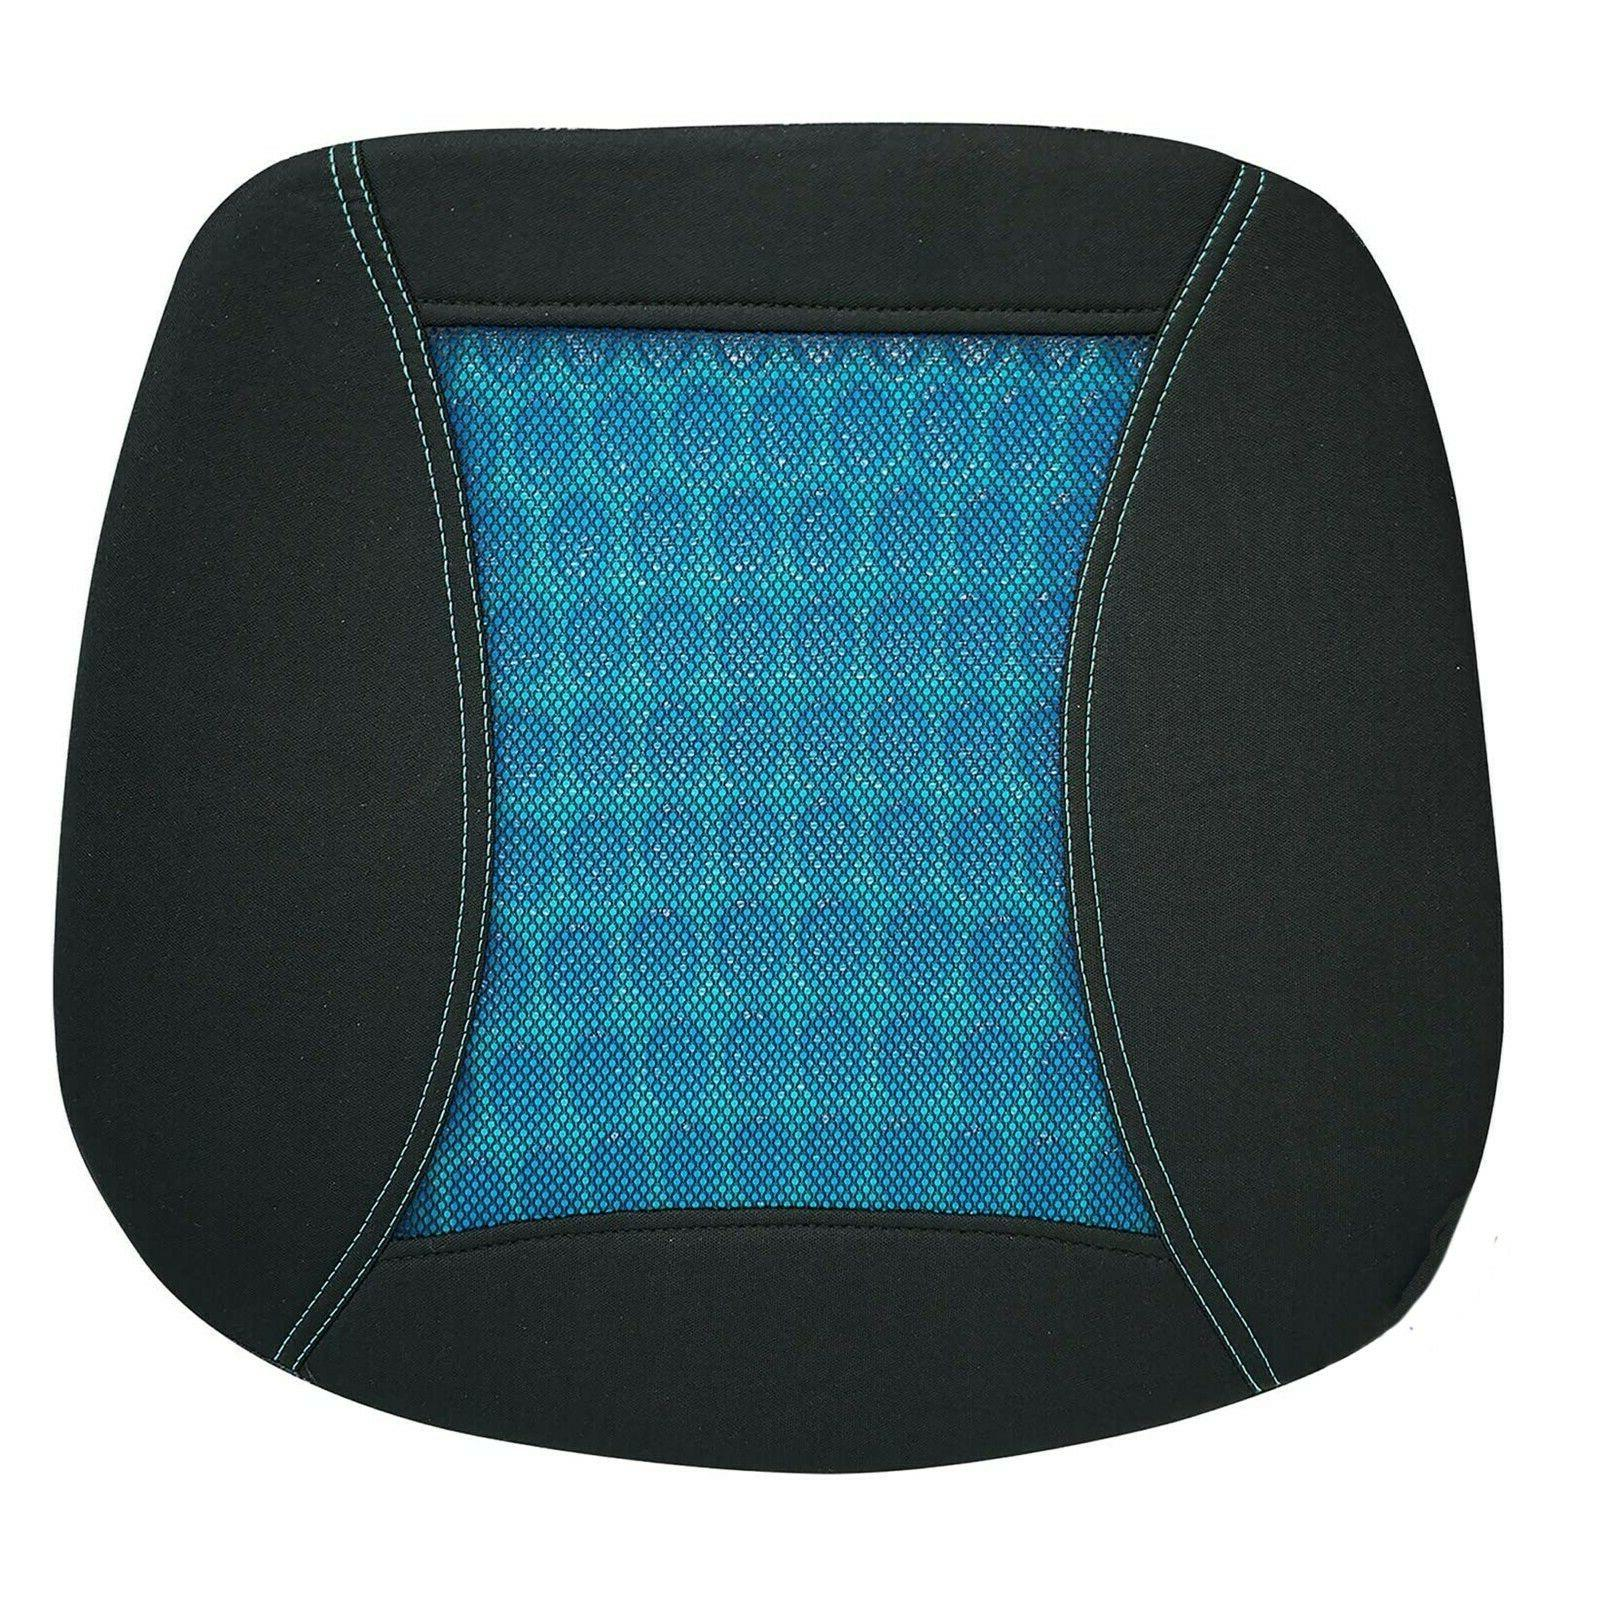 orthopedic gel and memory foam seat cushion